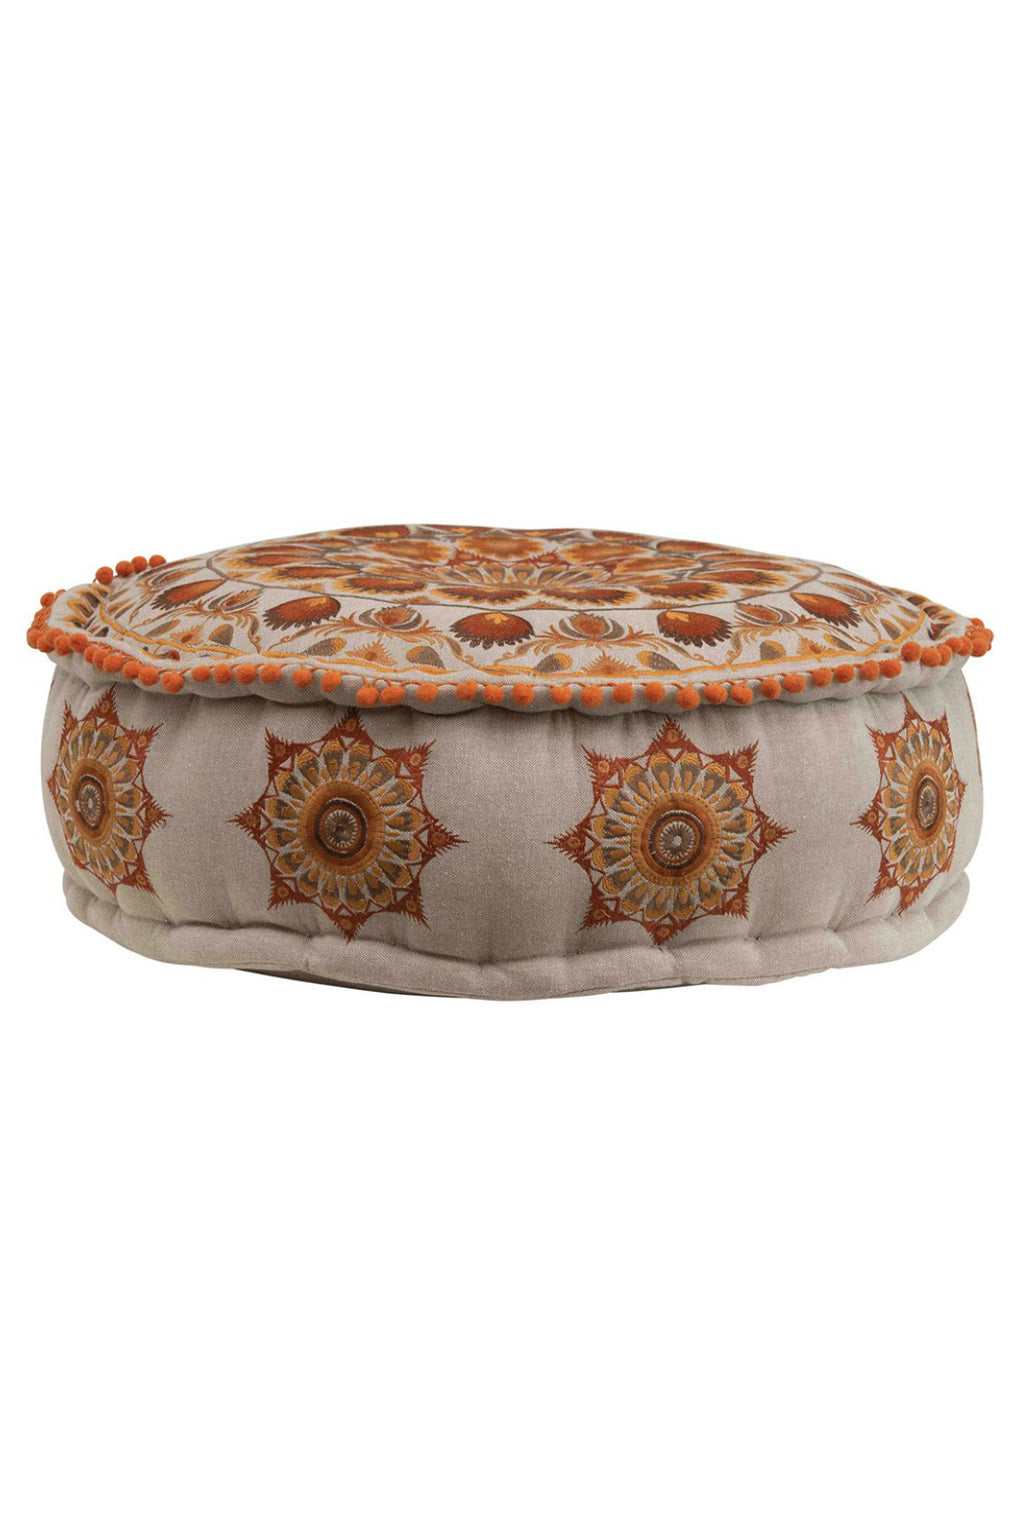 Creative Co-Op Bohemian Sunset Embroidered Pouf